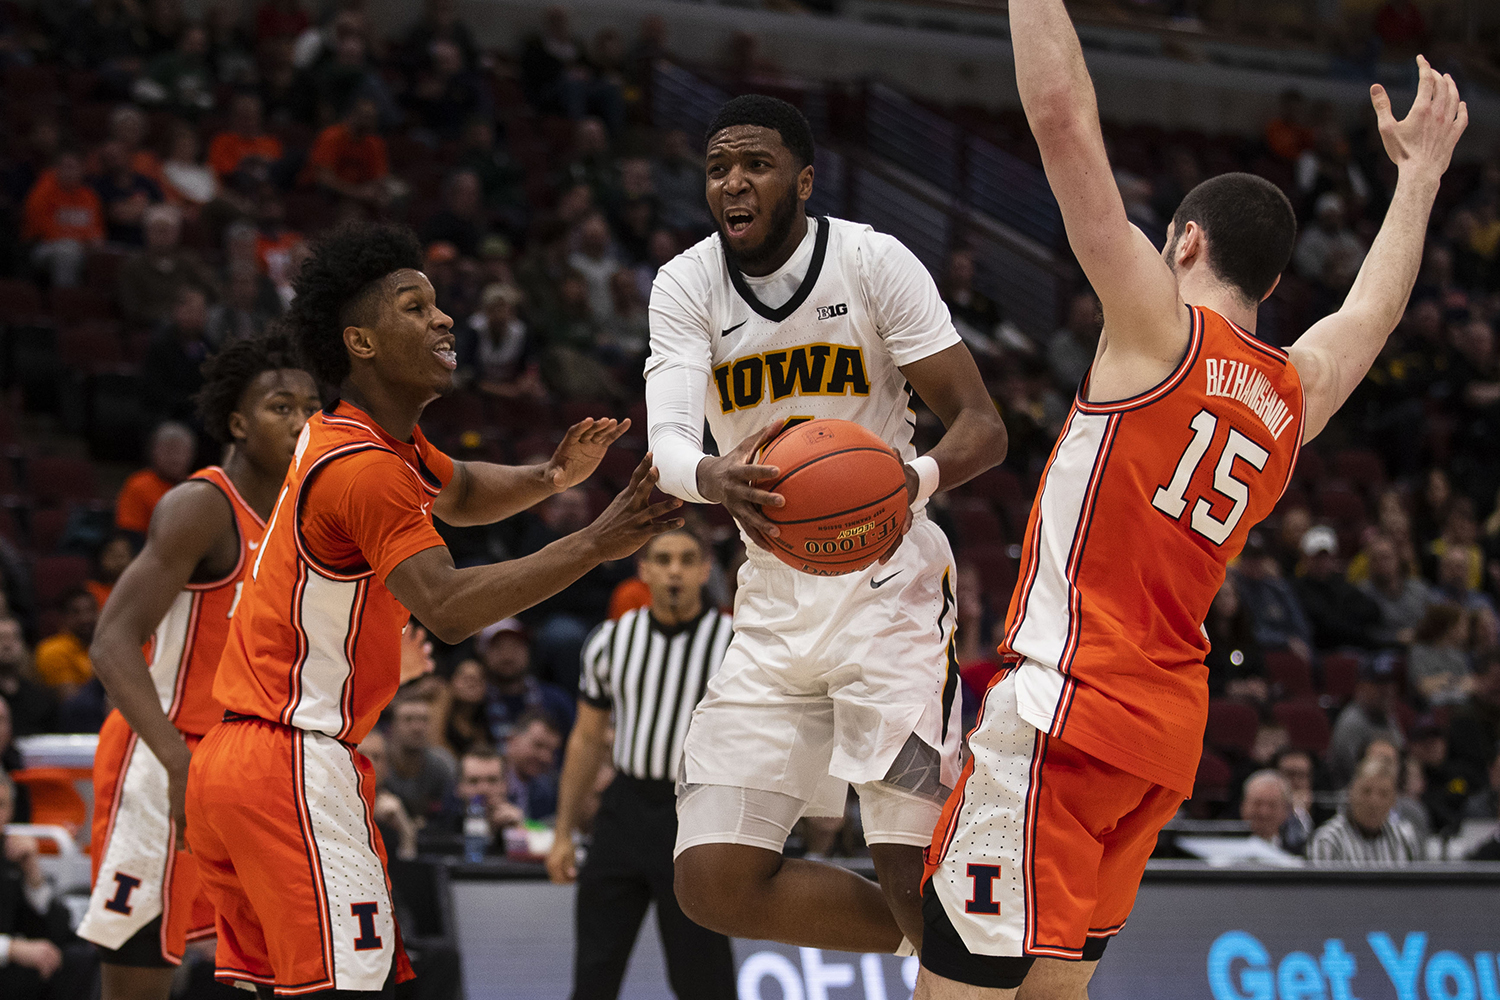 Iowa guard Isaiah Moss drives to the basket during the Iowa/Illinois Big Ten Tournament men's basketball game in the United Center in Chicago on Thursday, March 14, 2019. The Hawkeyes defeated the Fighting Illini, 83-62. (Lily Smith/The Daily Iowan)